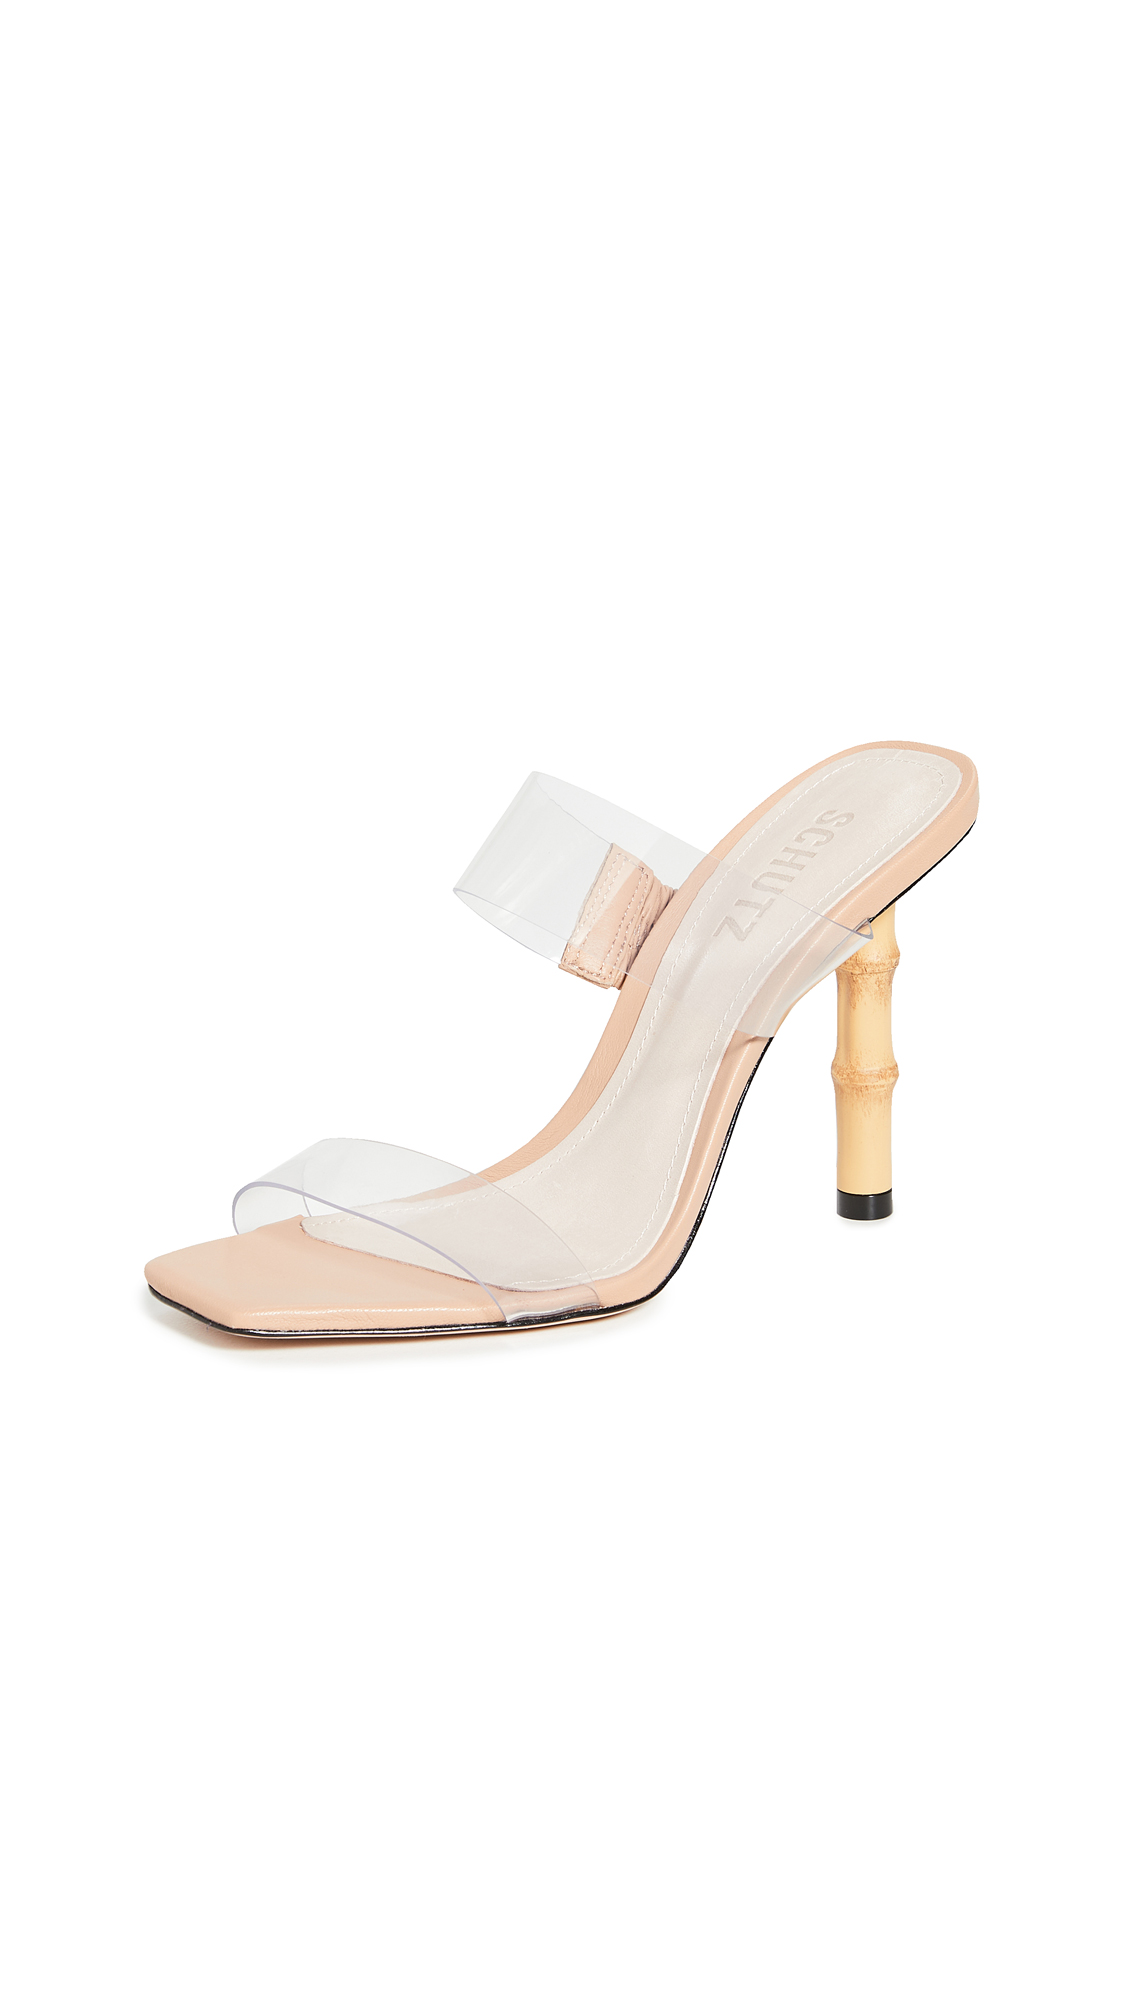 Schutz Colette Sandals – 30% Off Sale